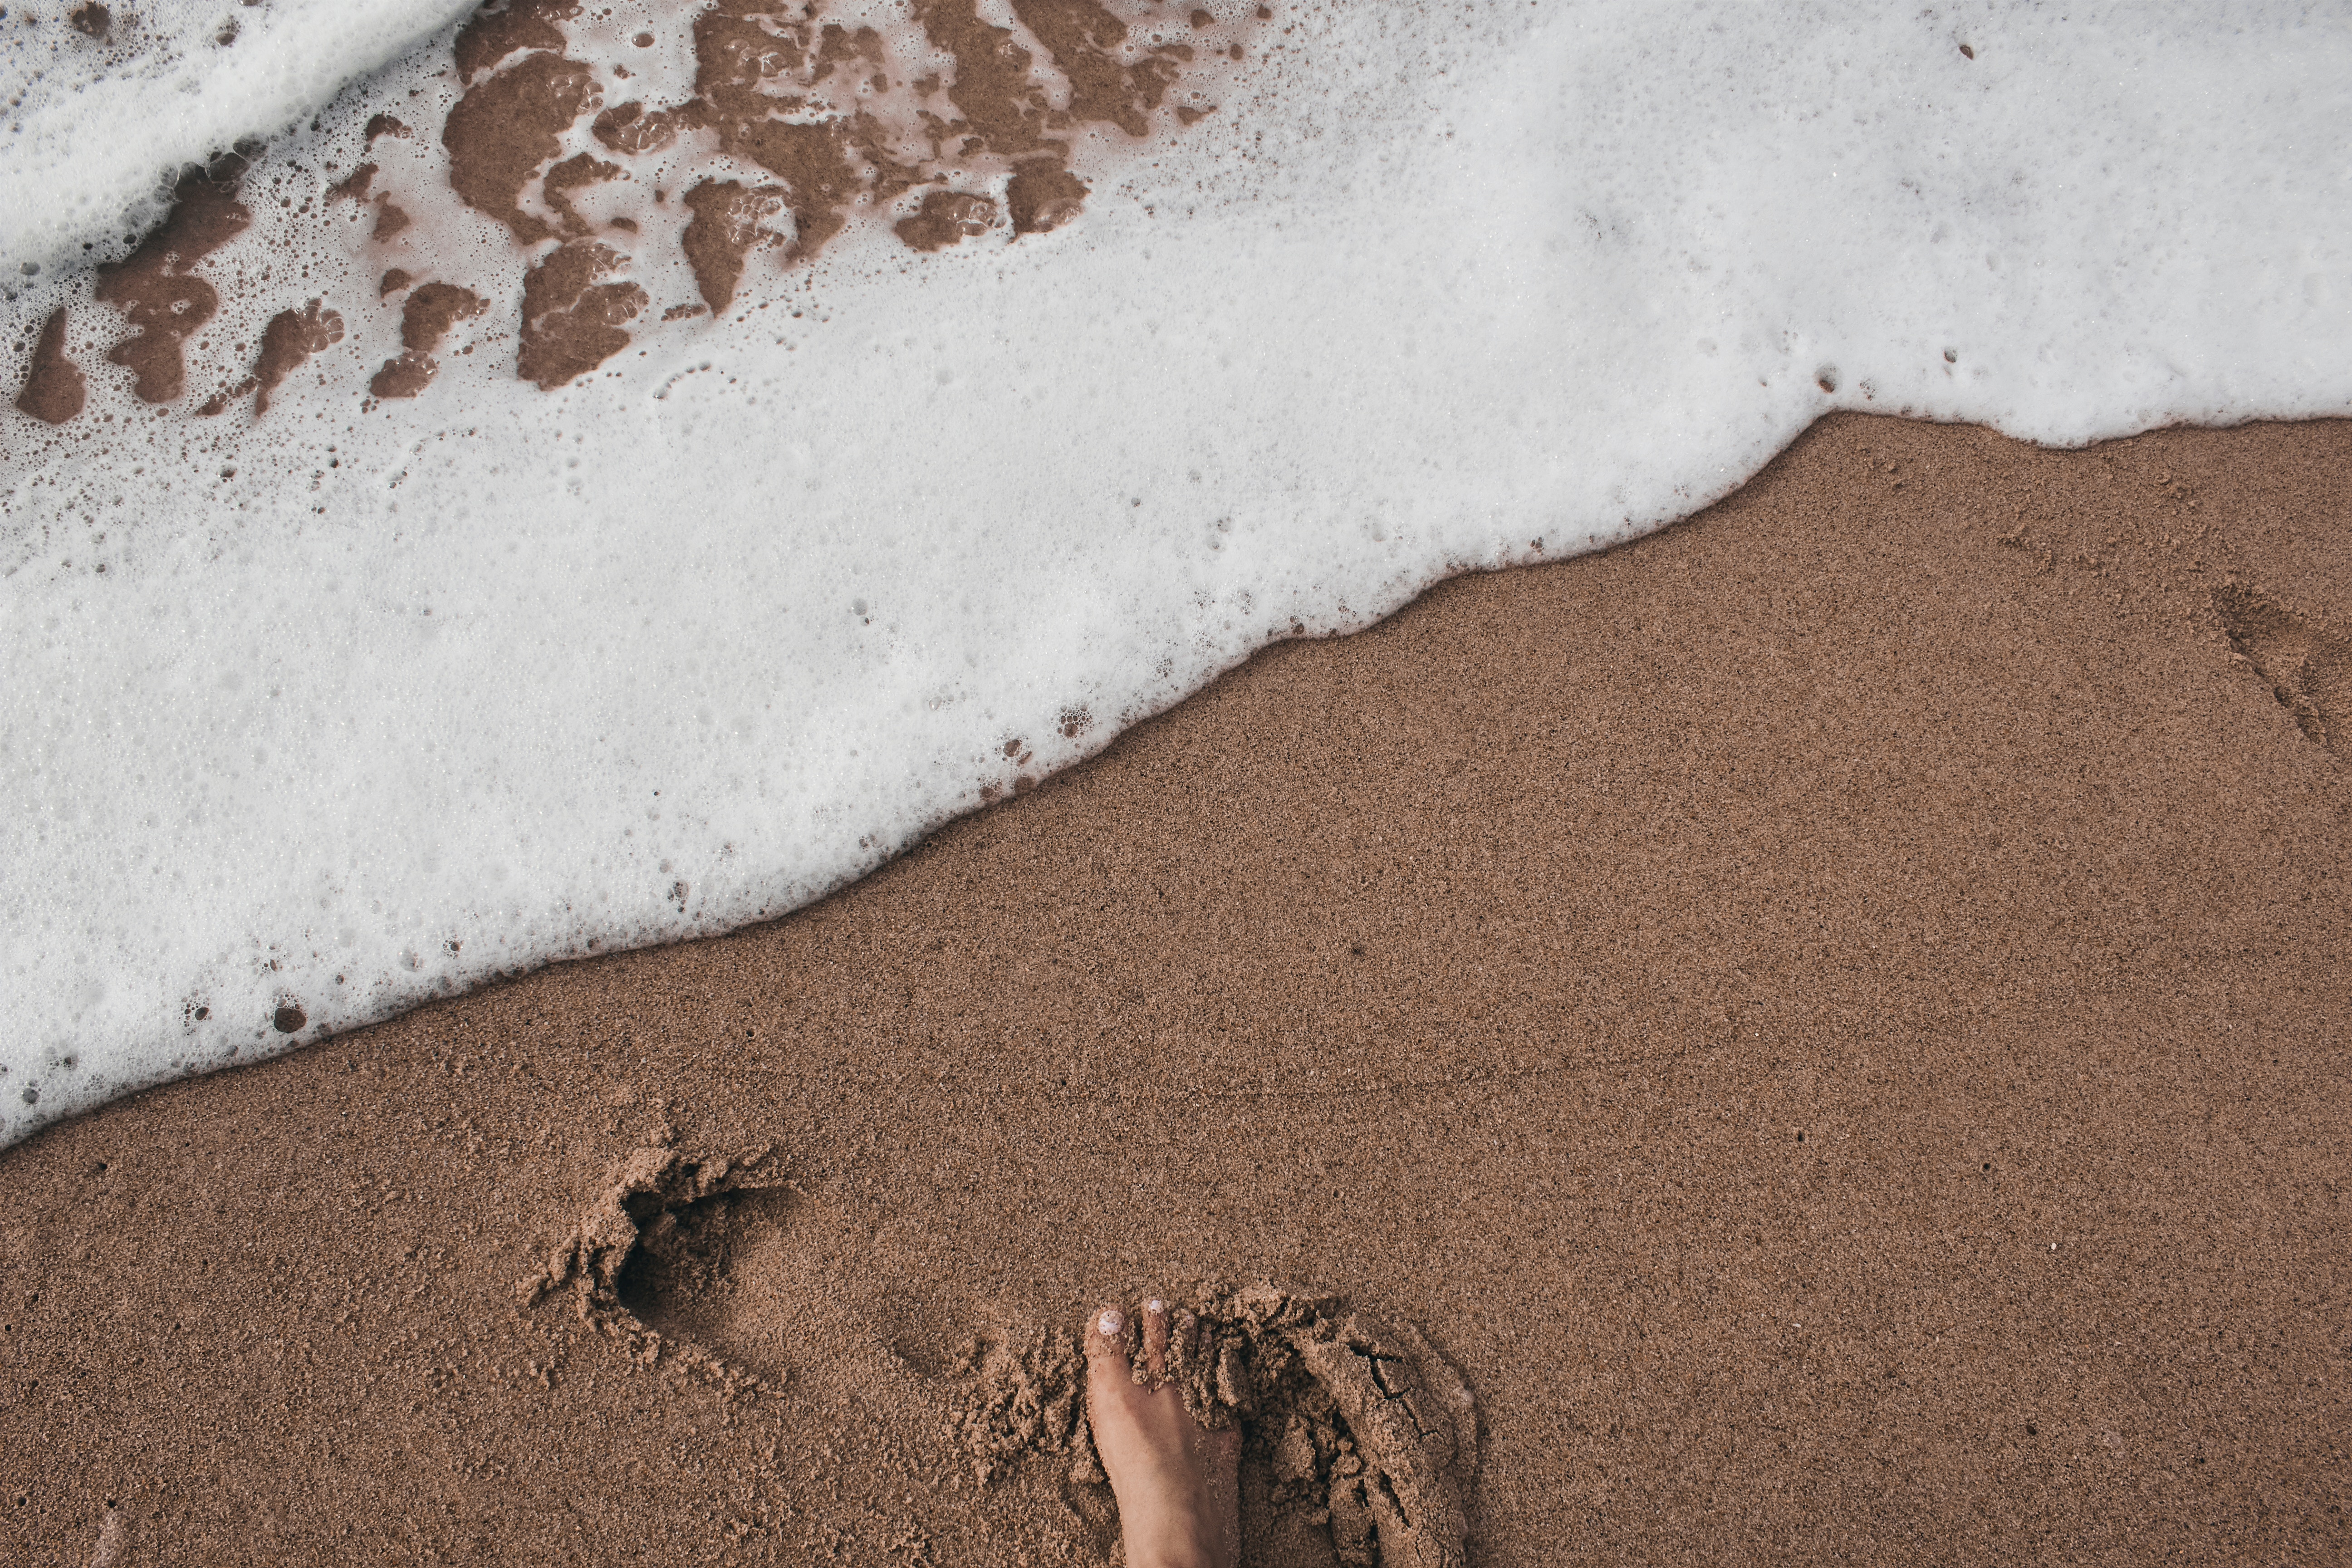 footprint on the sand. sustainable travelling is important.